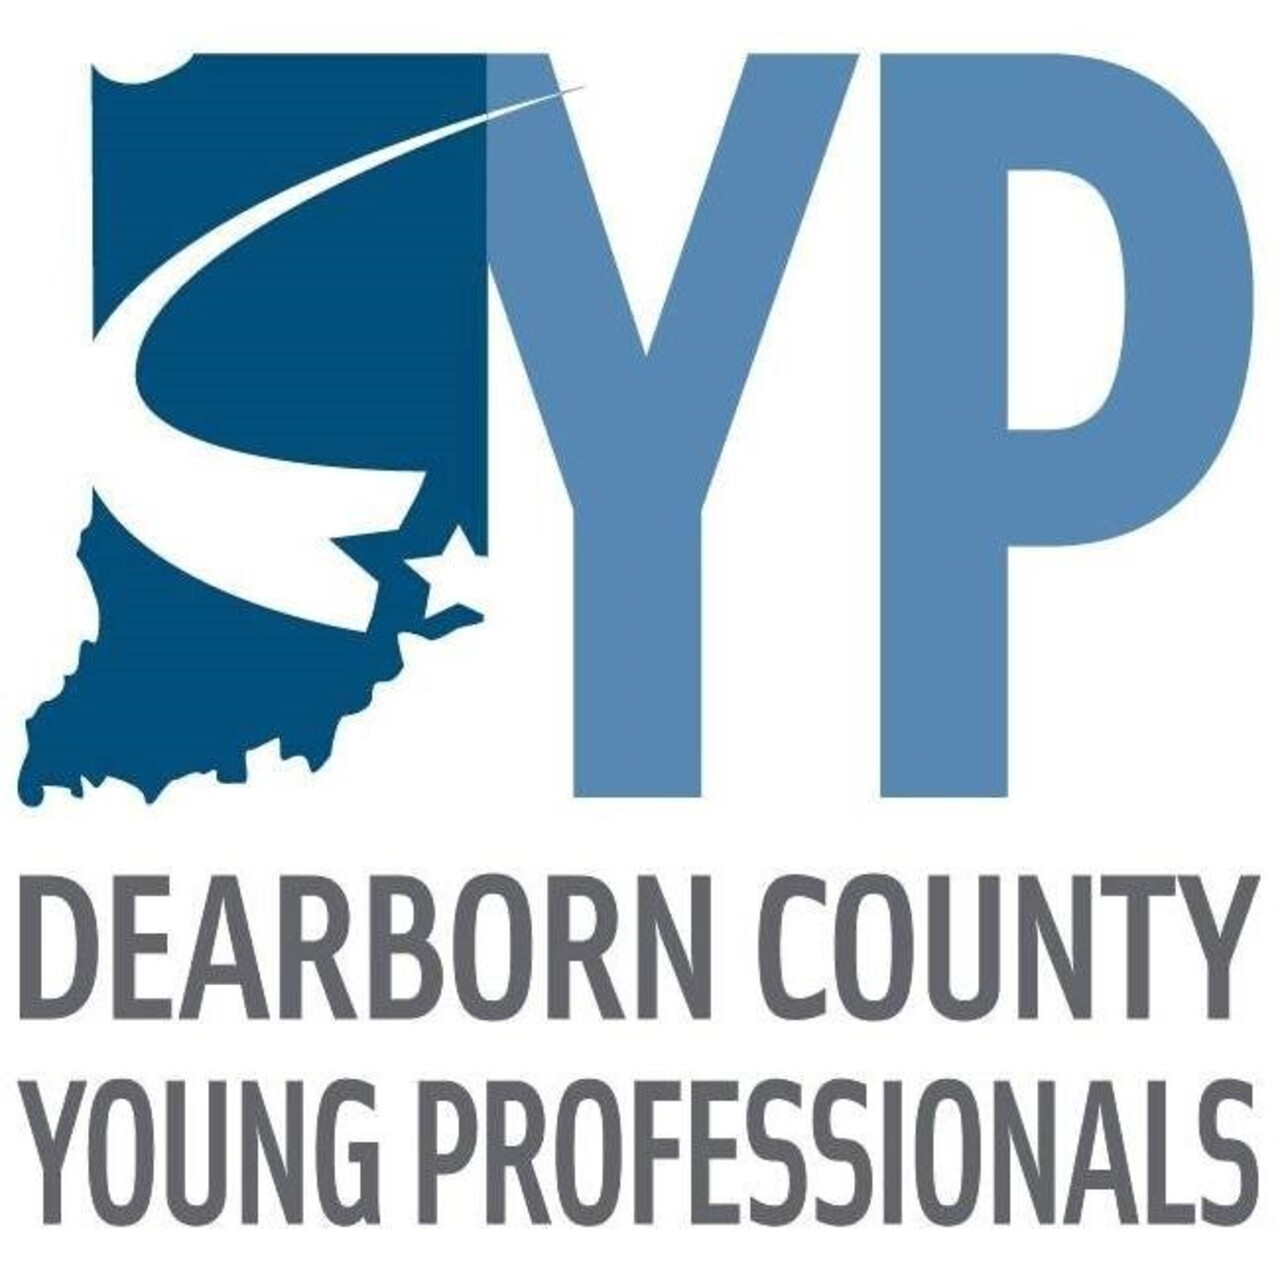 Dearborn County Young Professionals Team 2